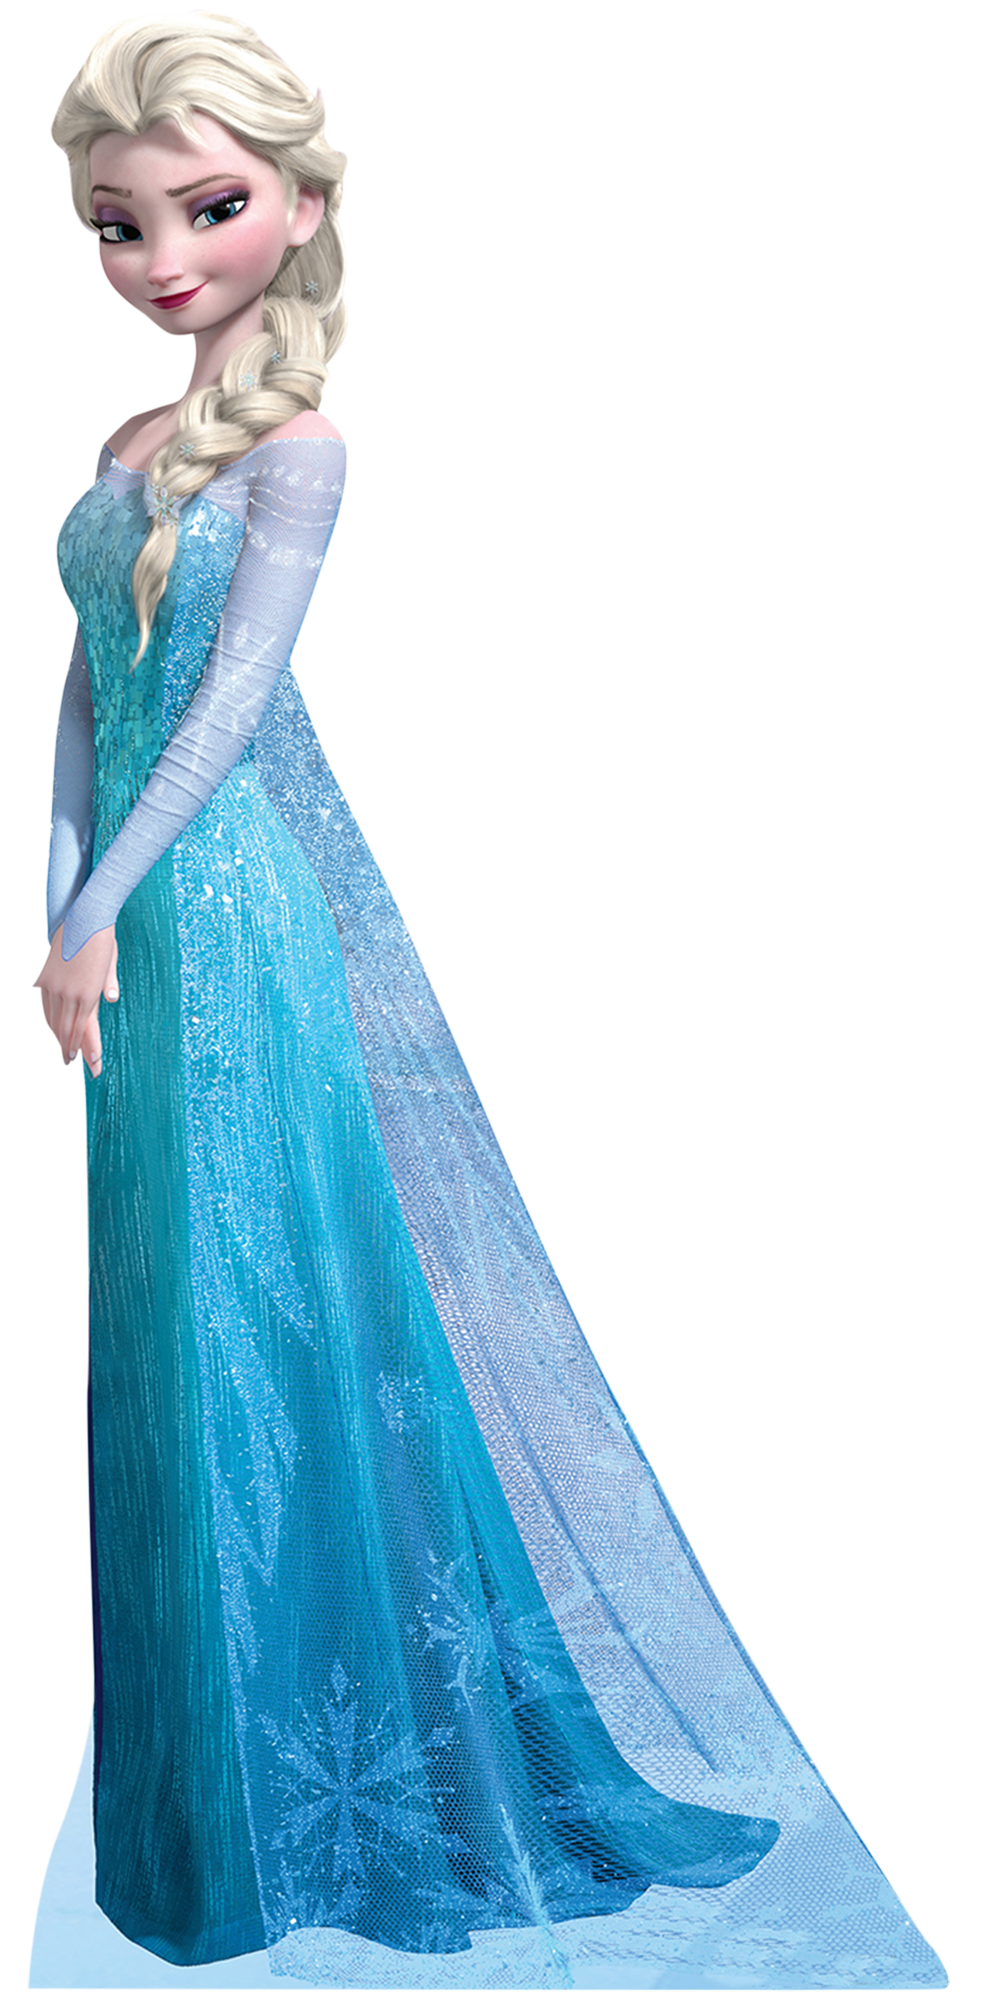 Elsa de frozen png. Transparent images all free